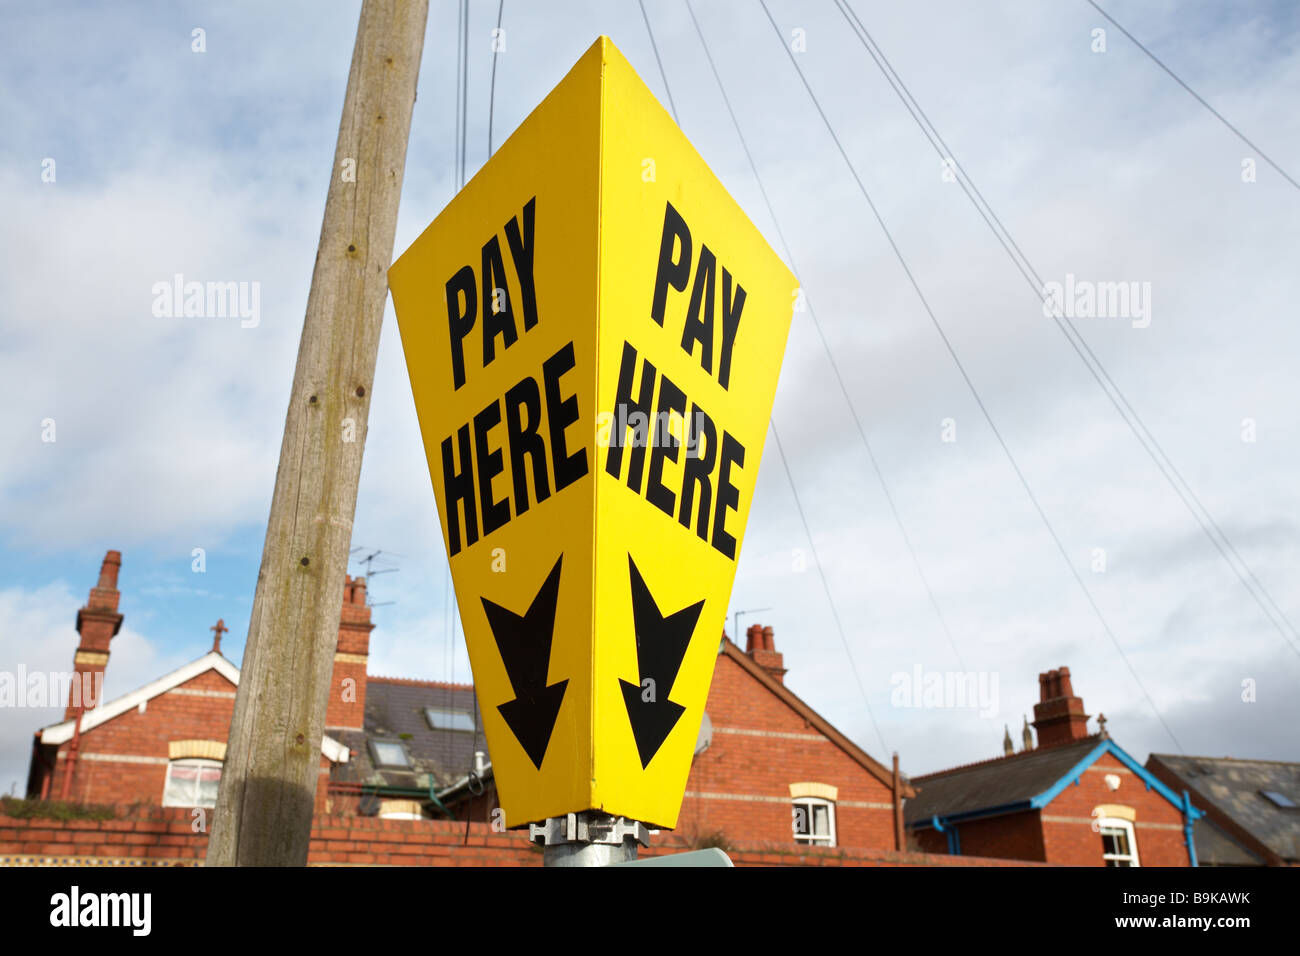 Pay Here car park sign - Stock Image